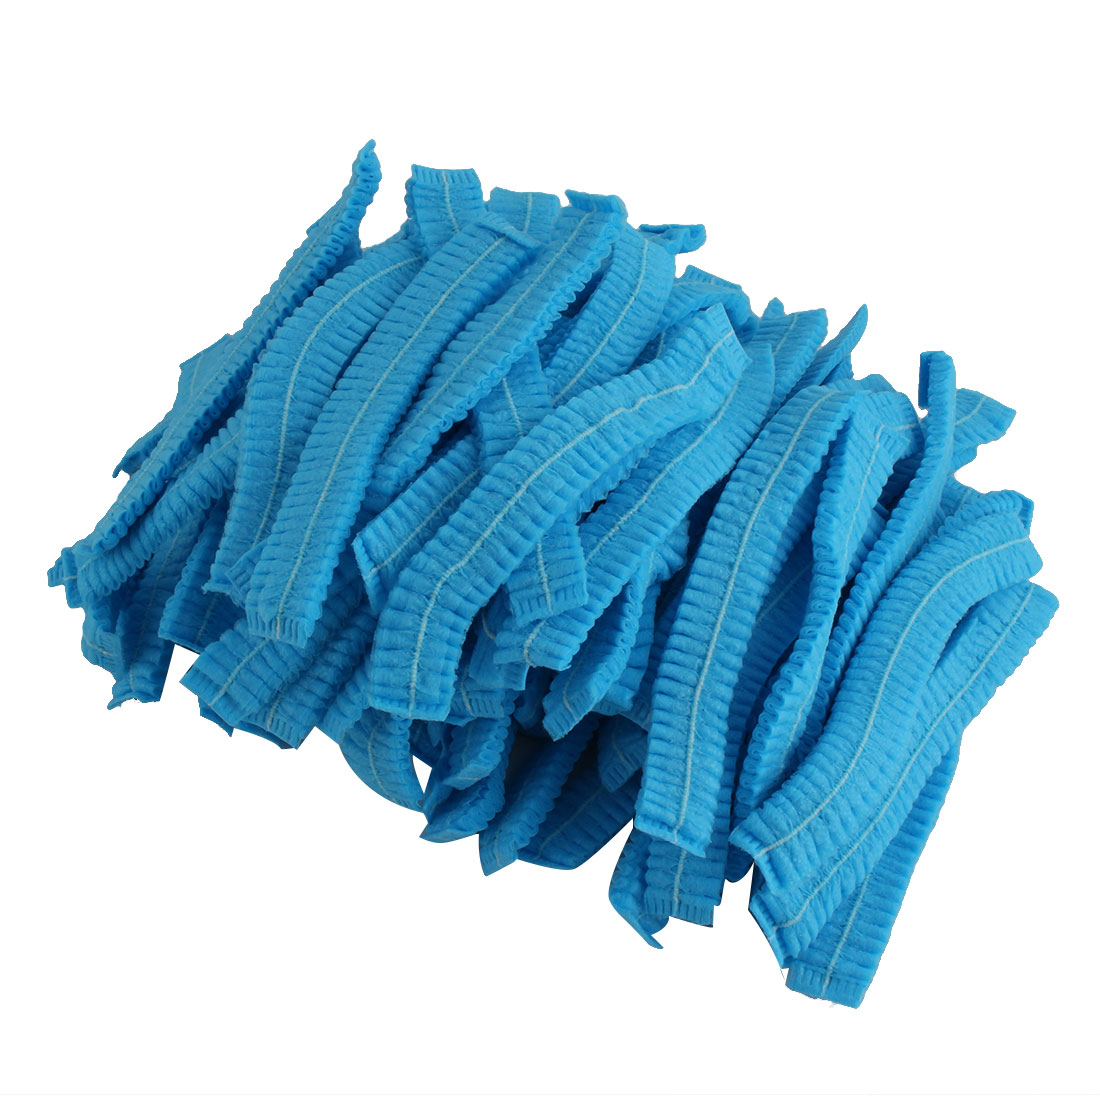 Hospital-Pleated-Blue-Non-woven-Fabric-Anti-Dust-Disposable-Mop-Cap-110-Pcs